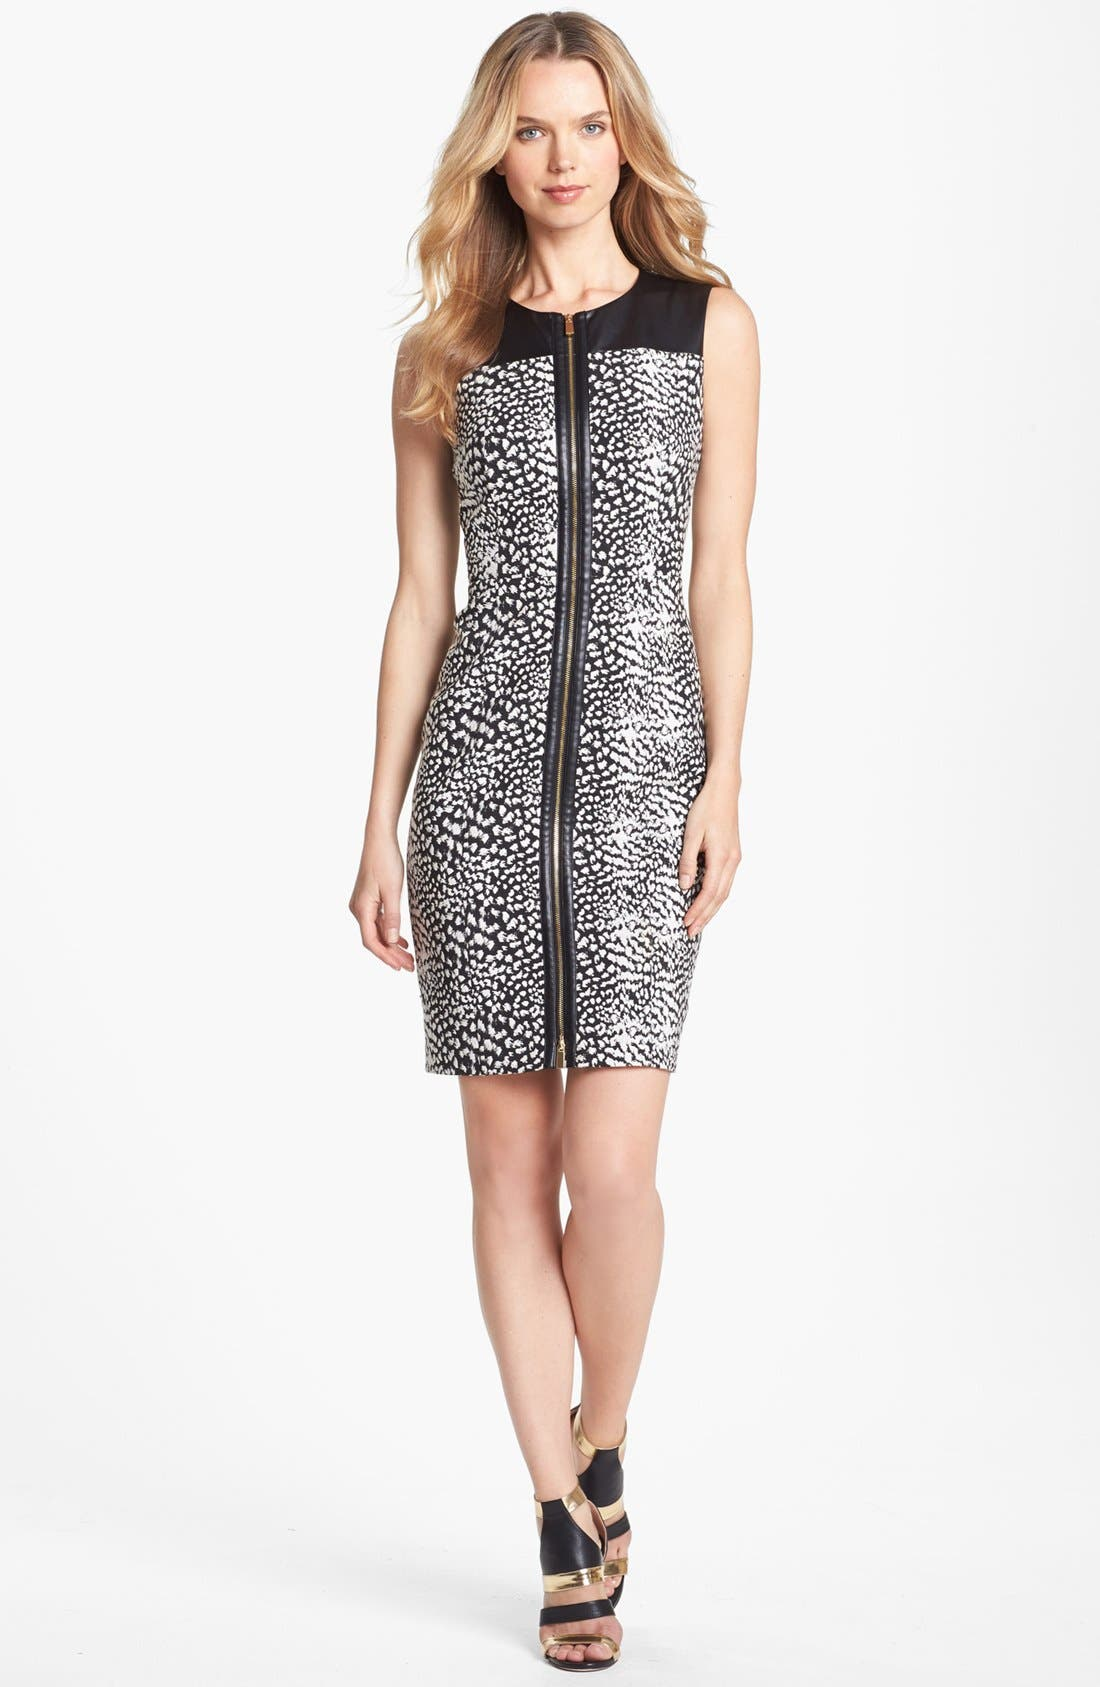 Alternate Image 1 Selected - Vince Camuto Faux Leather Detail Print Zip Front Dress (Petite)